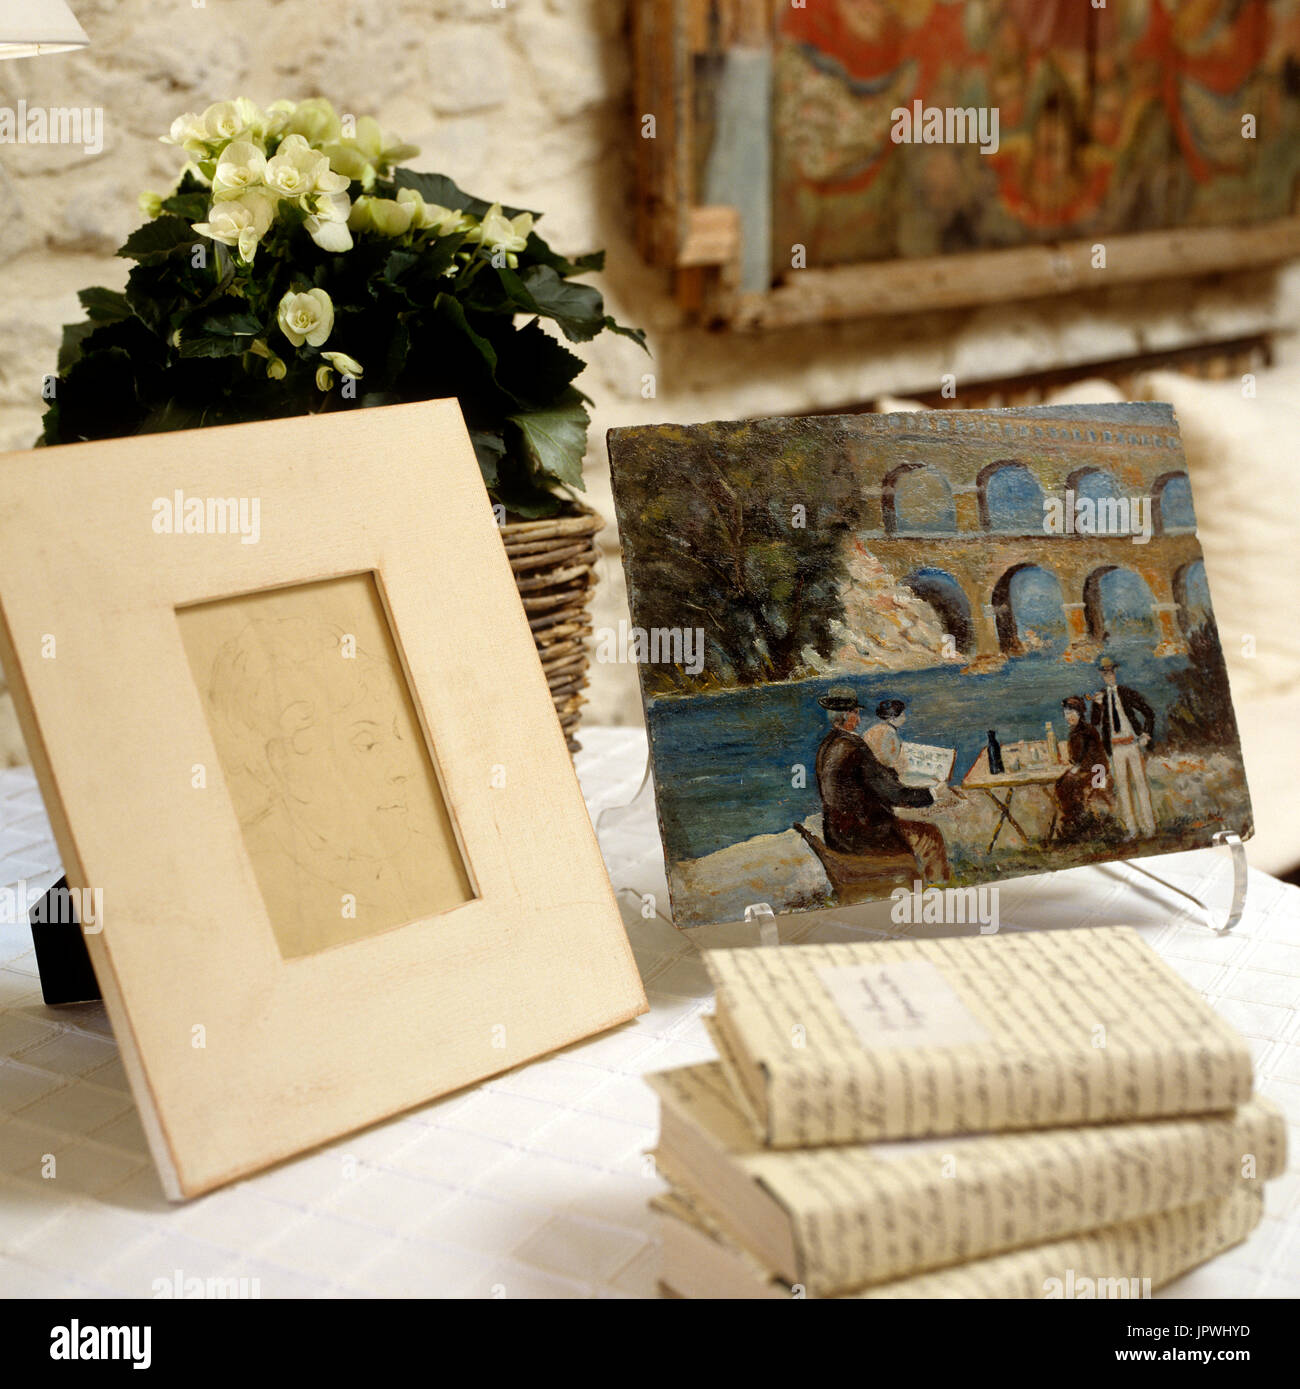 Books, frame, painting and floral arrangement on table